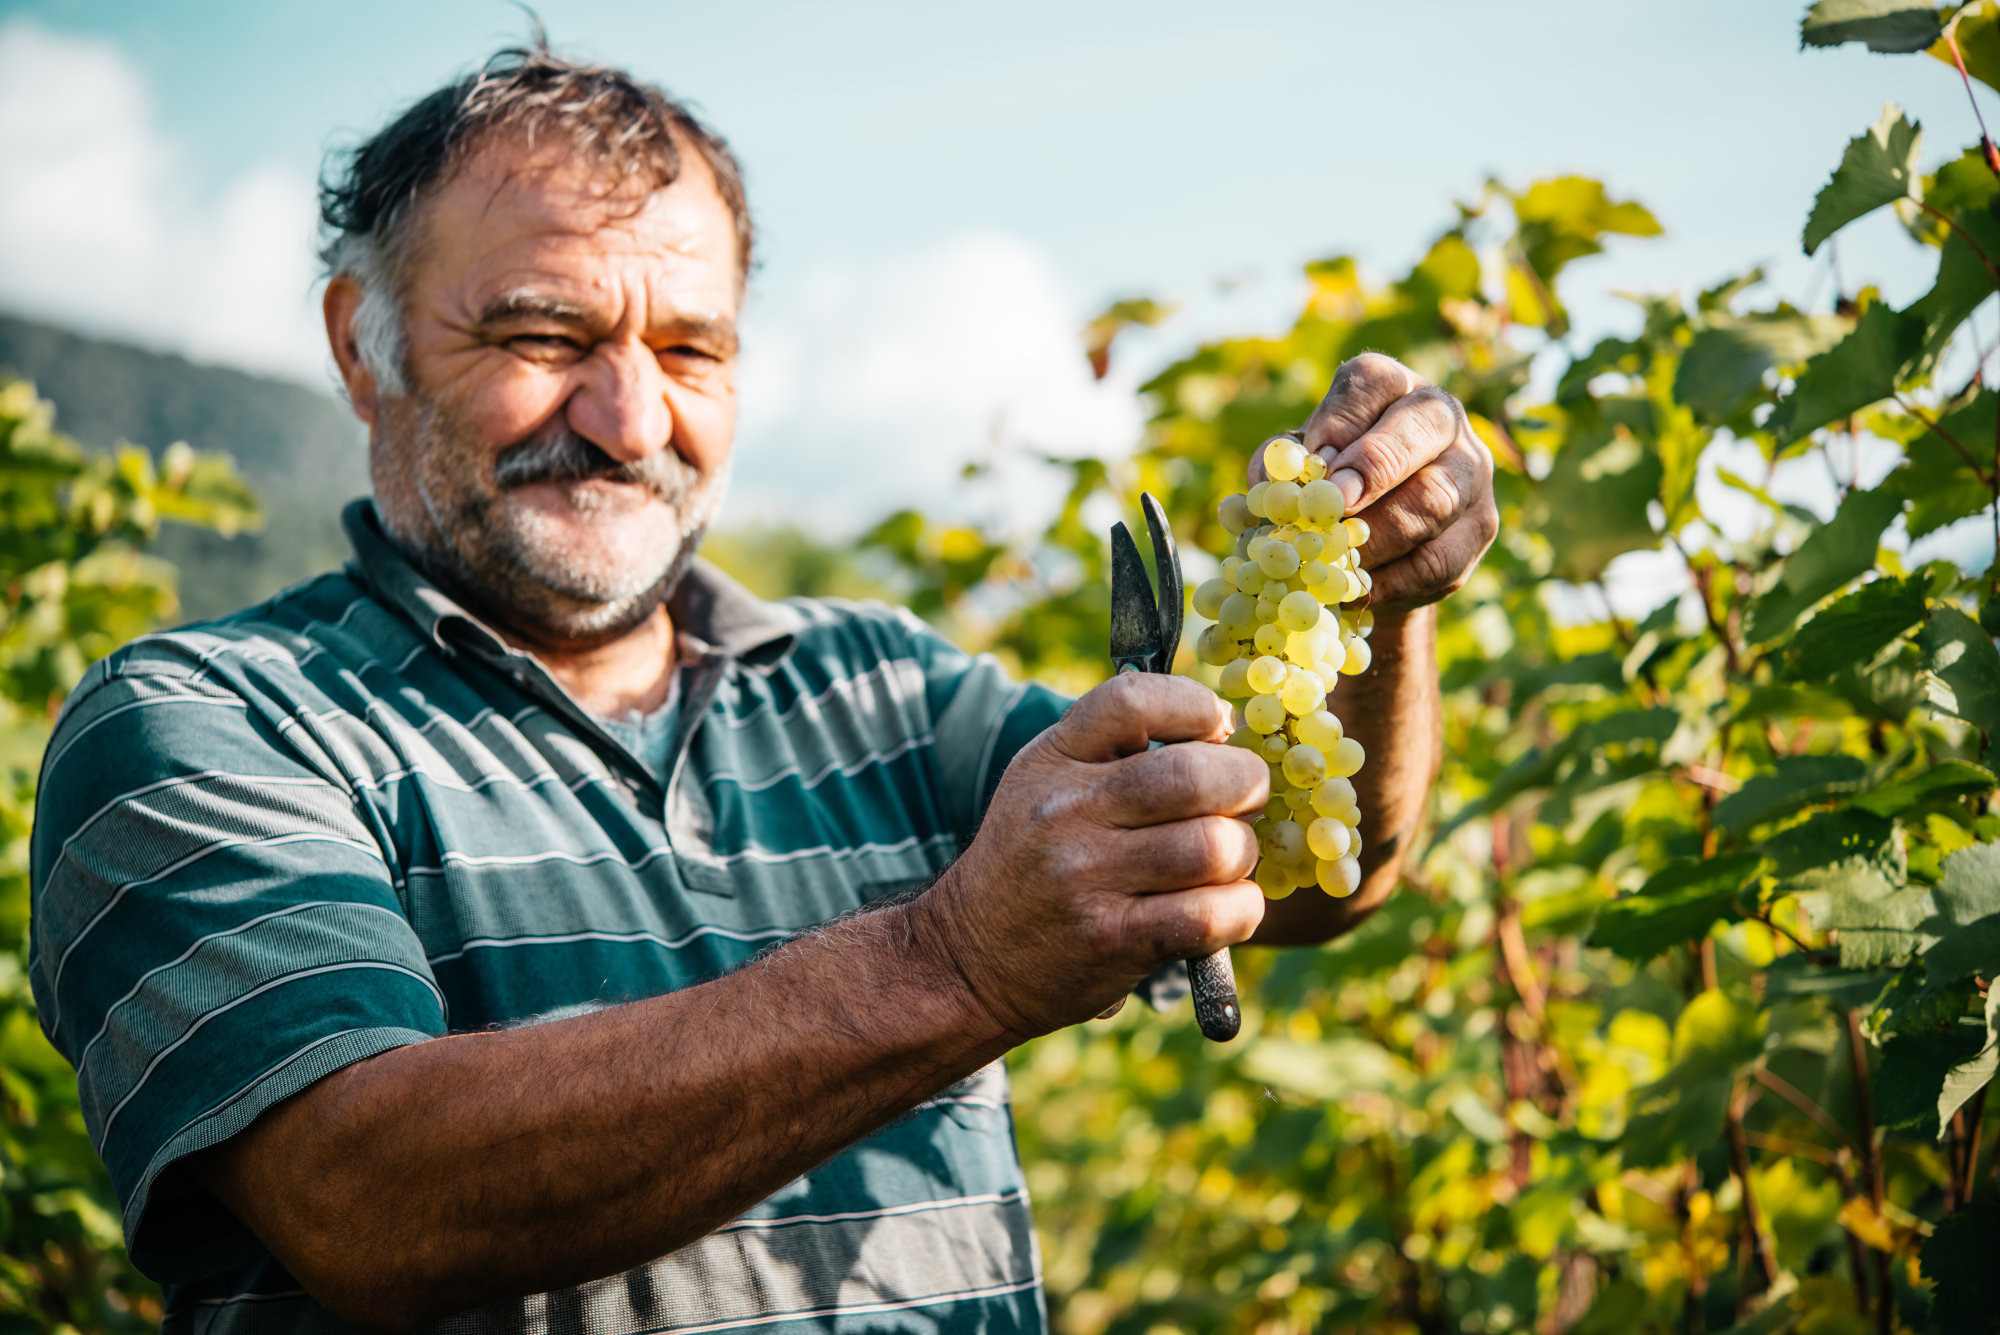 Wine comes from Georgia